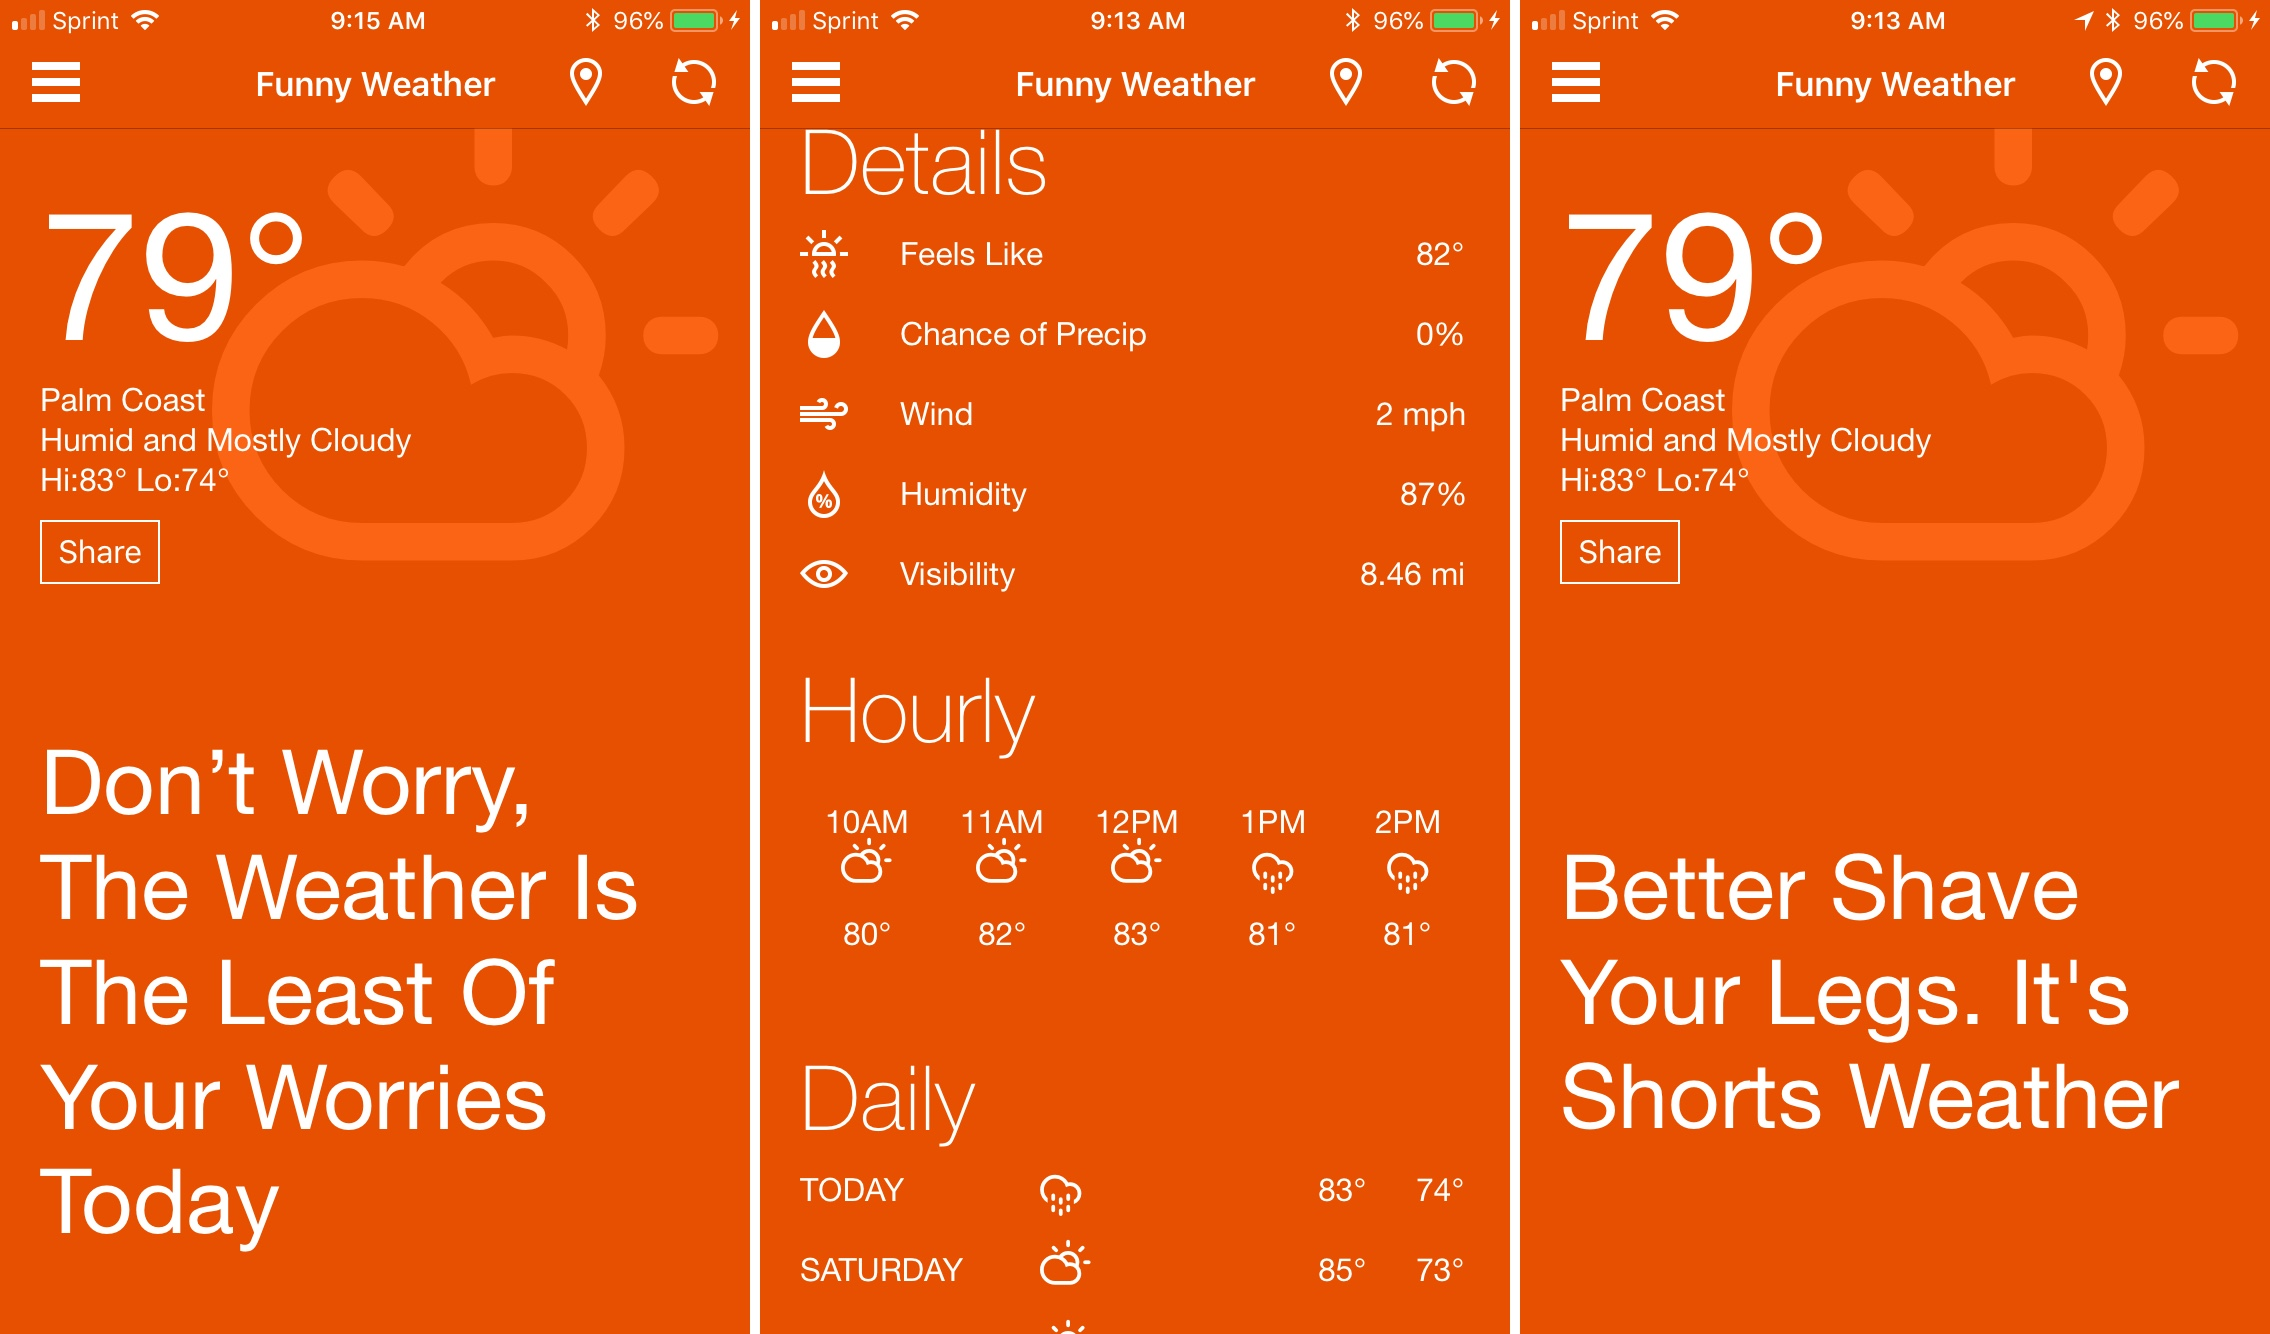 The best funny weather apps for iOS